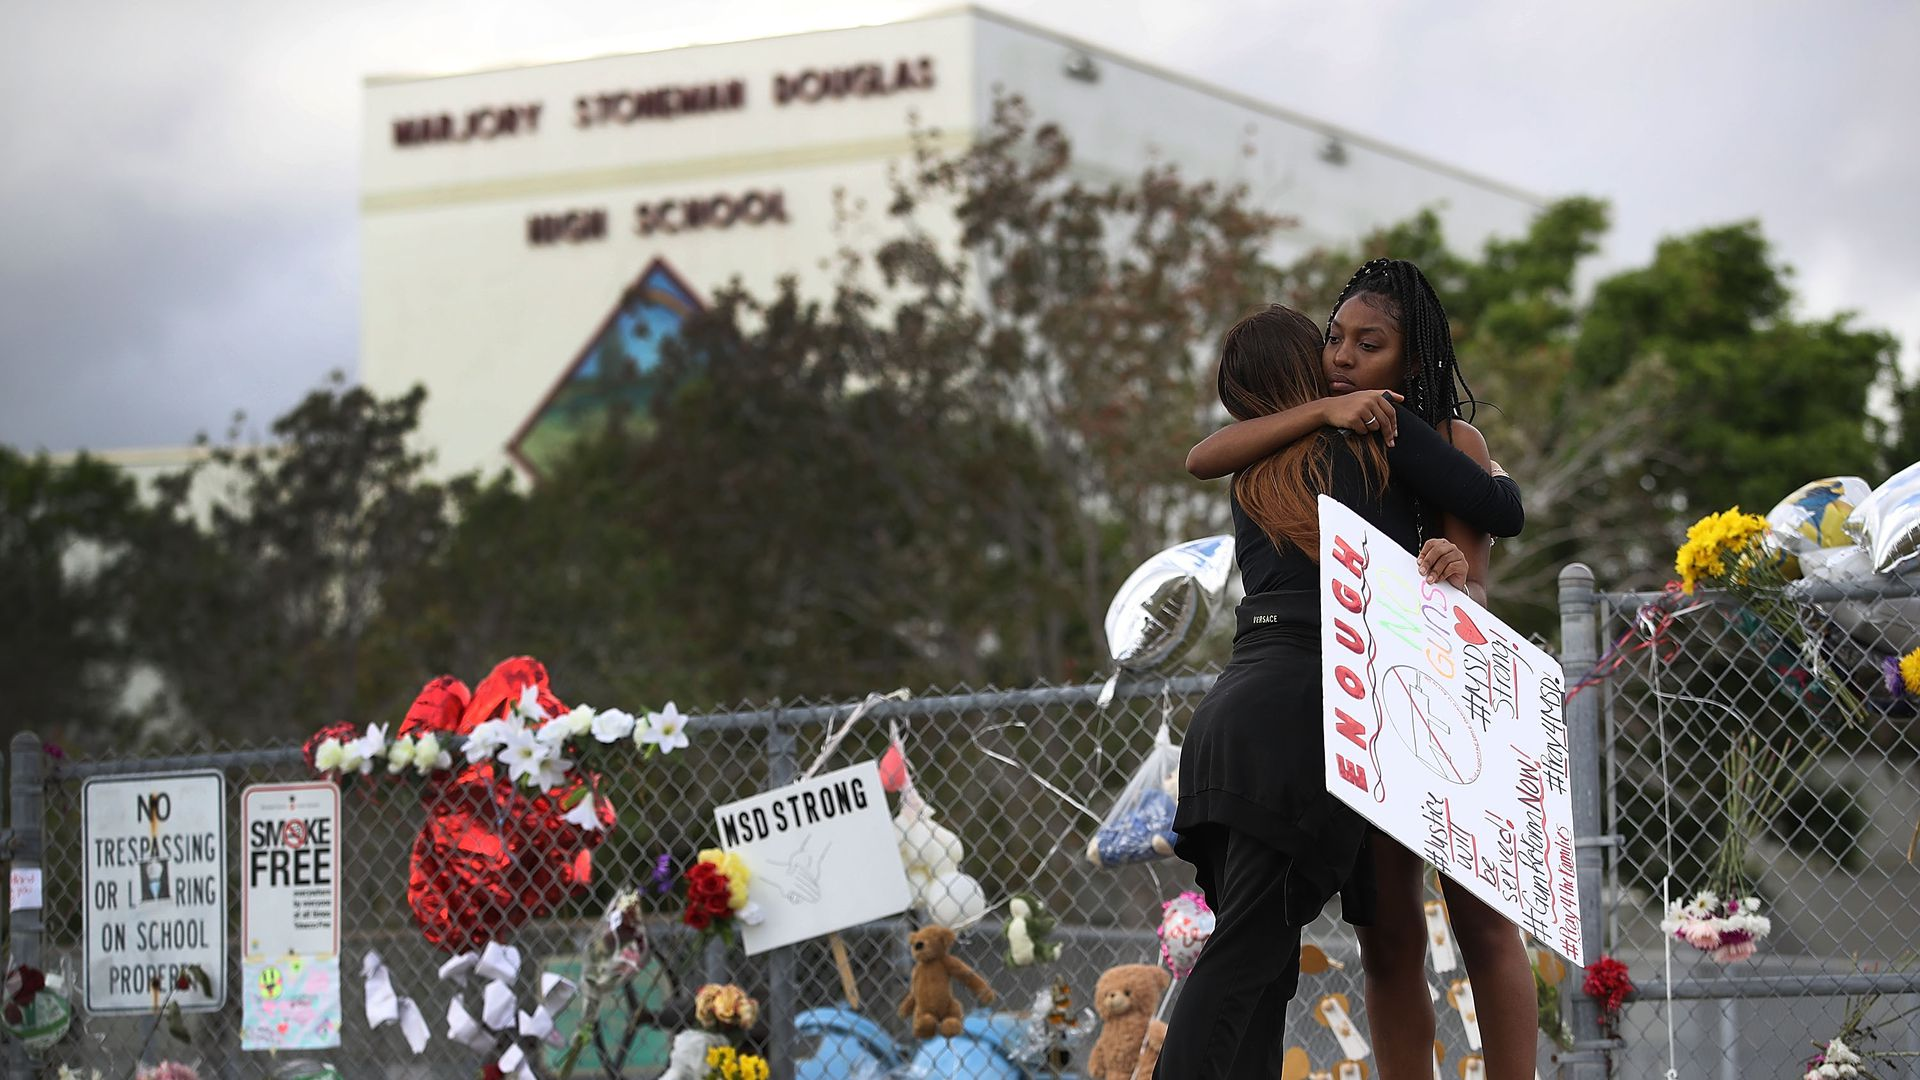 Students comforting each other after a shooting at Marjory Stoneman Douglas High School in Parkland, Florida